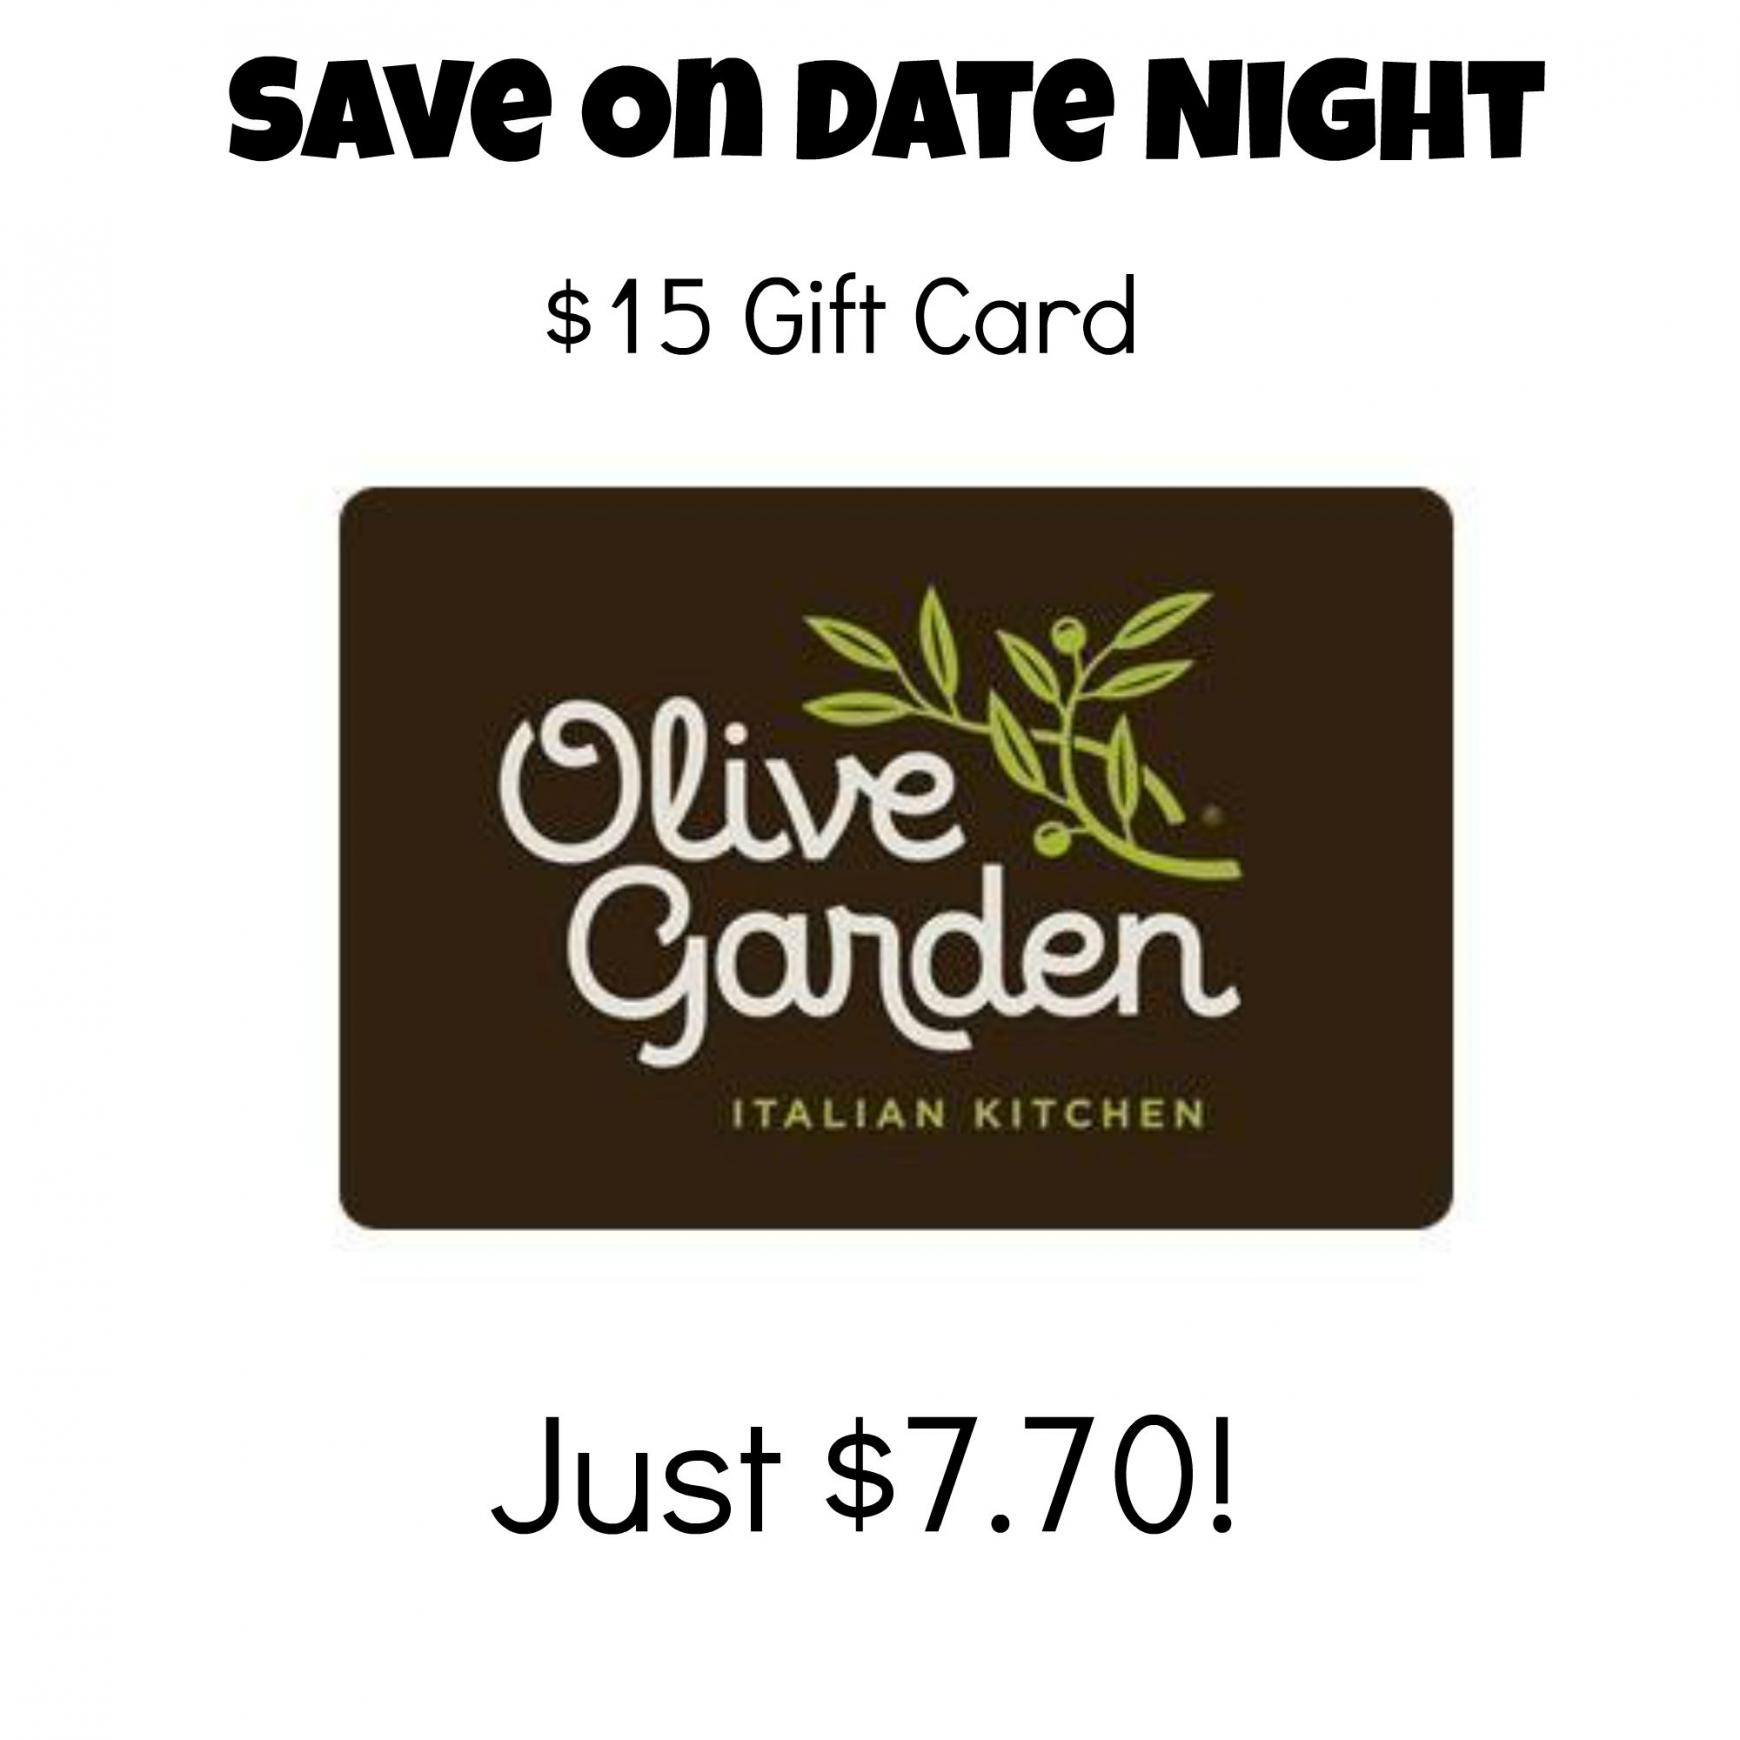 www.olivegarden.com gift card balance photo - 1